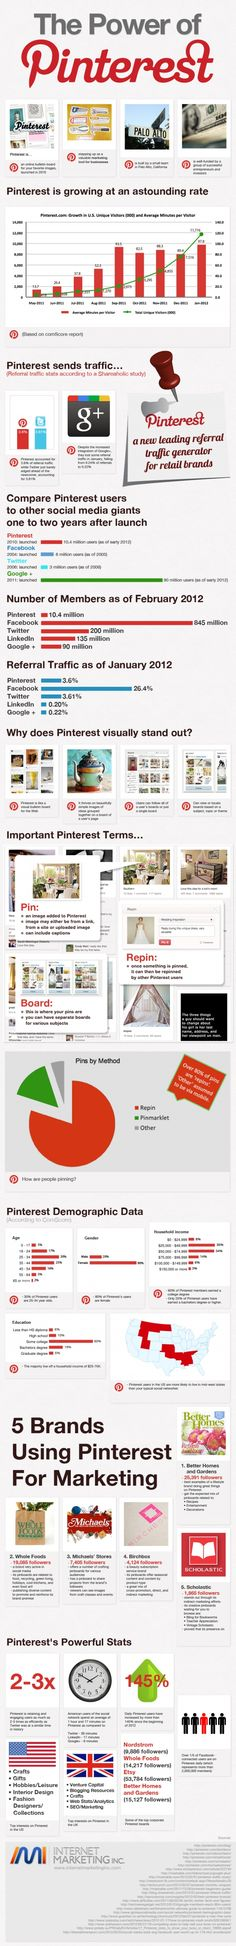 Article: This Is Everything You Need To Know About Pinterest (includes Infographic)